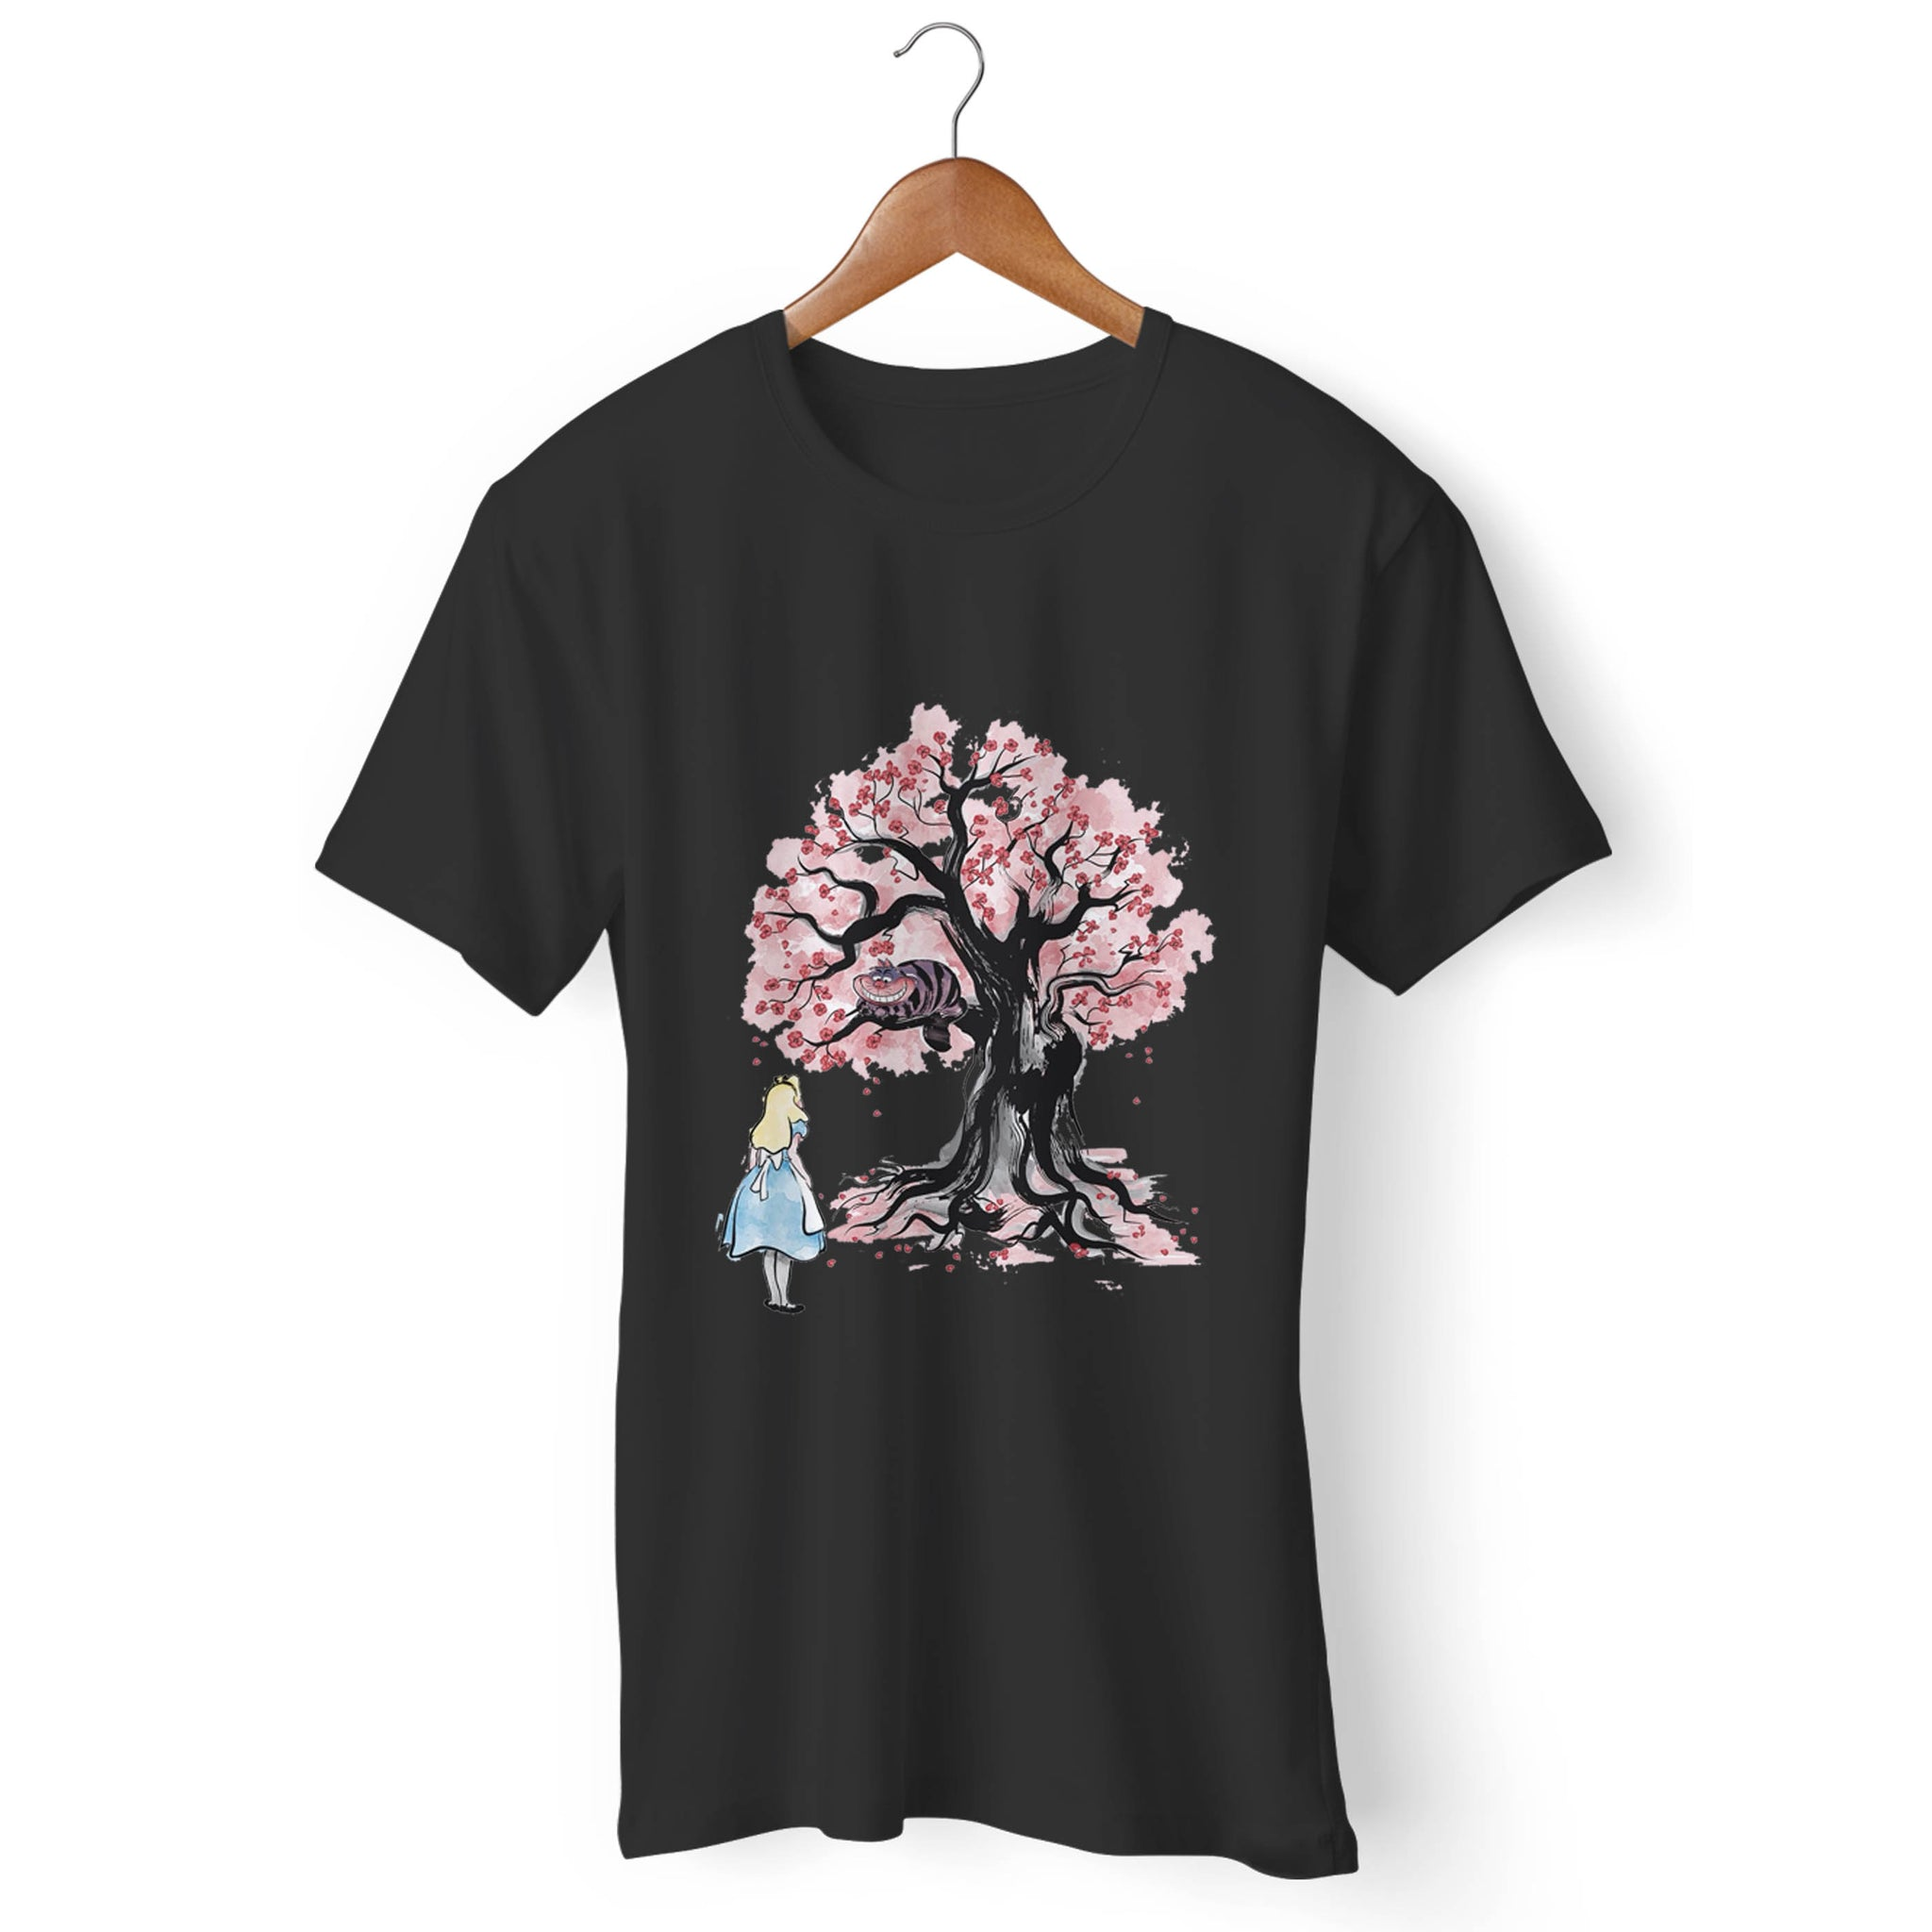 The Chesire's Tree Man's T-Shirt